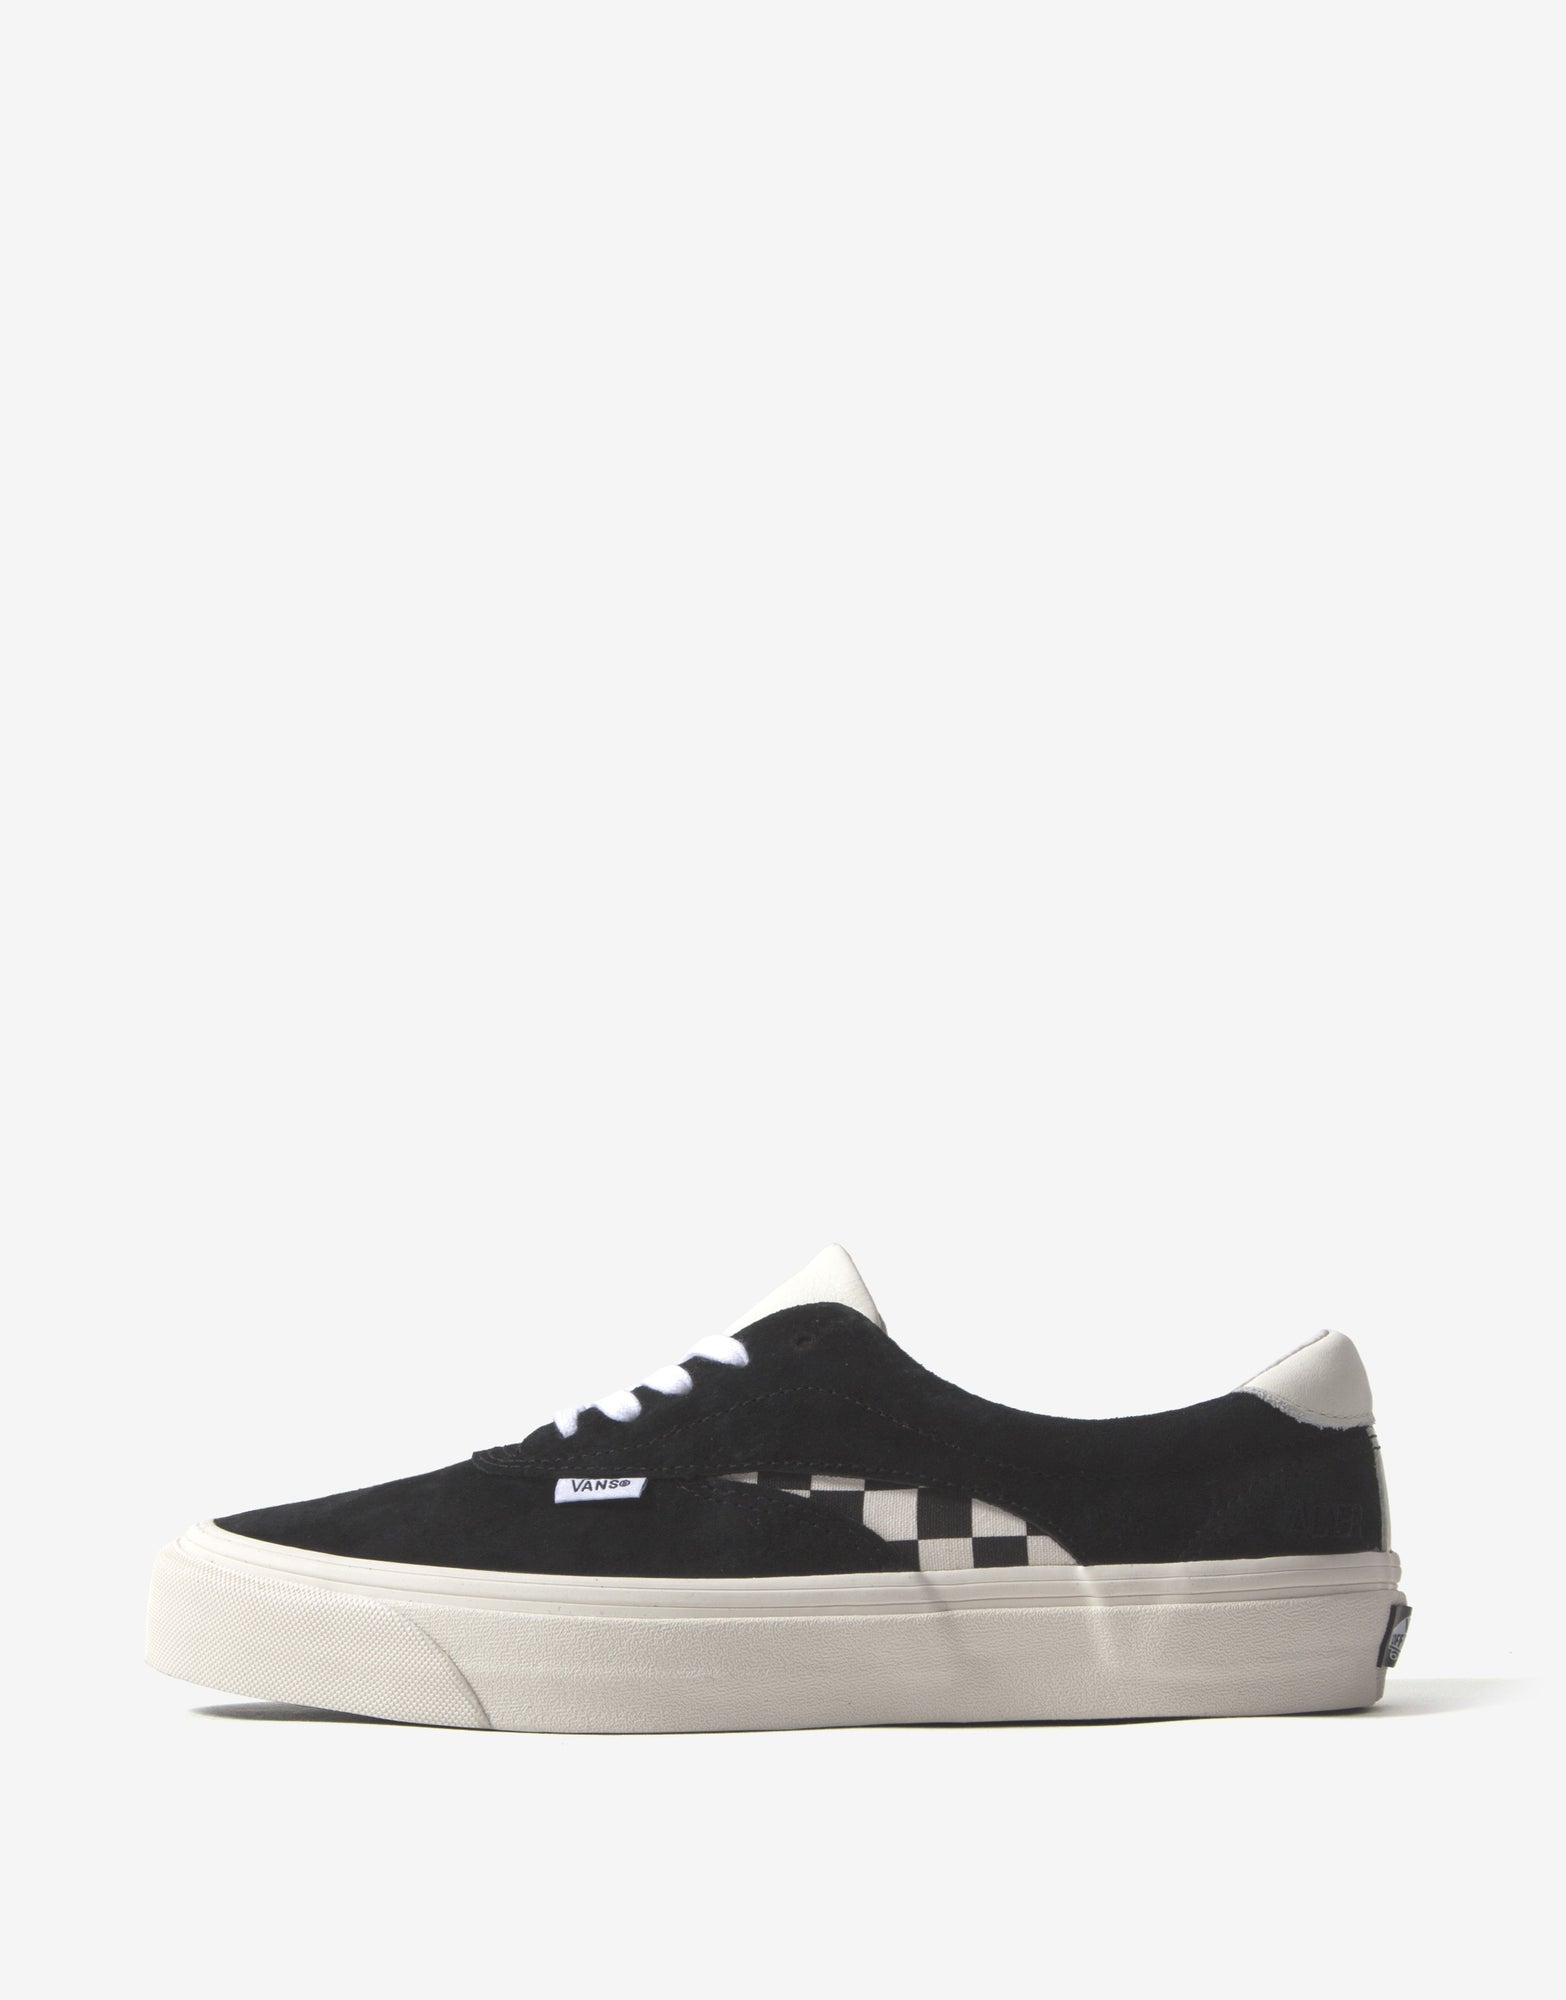 Vans Staple Acer NI Shoes - Black/Marshmallow